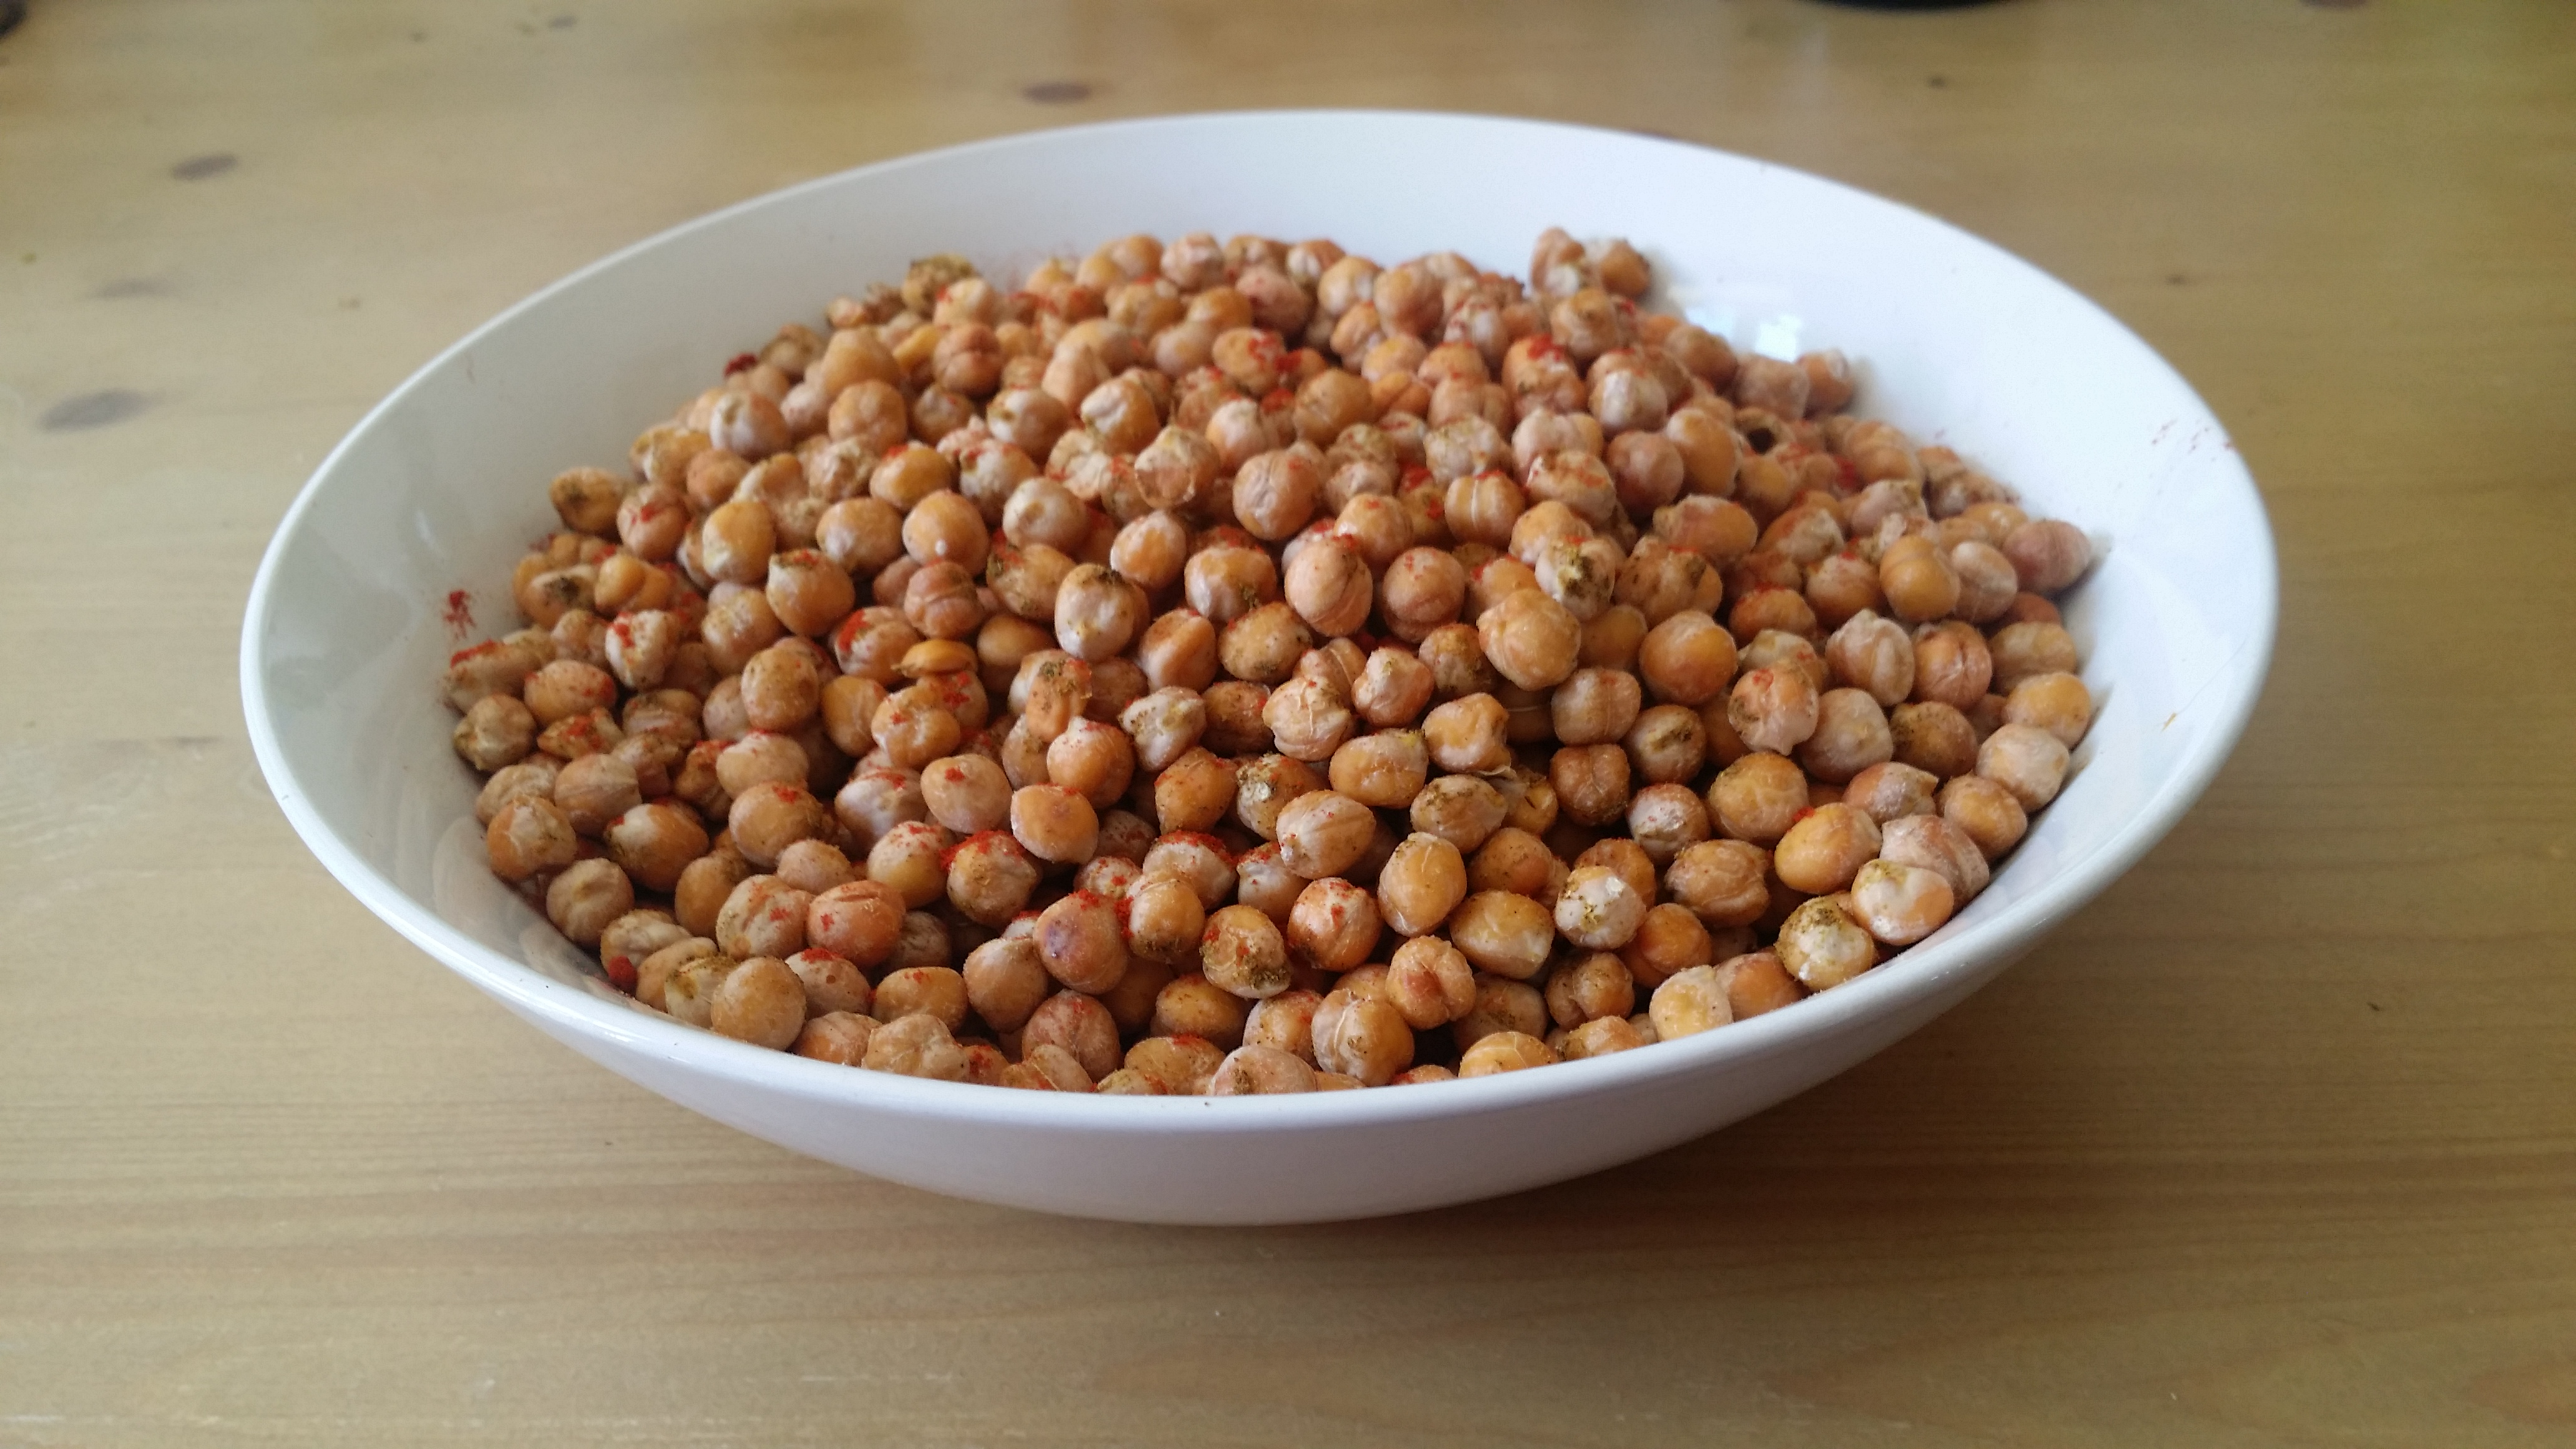 Roasted Chickpeas Pic